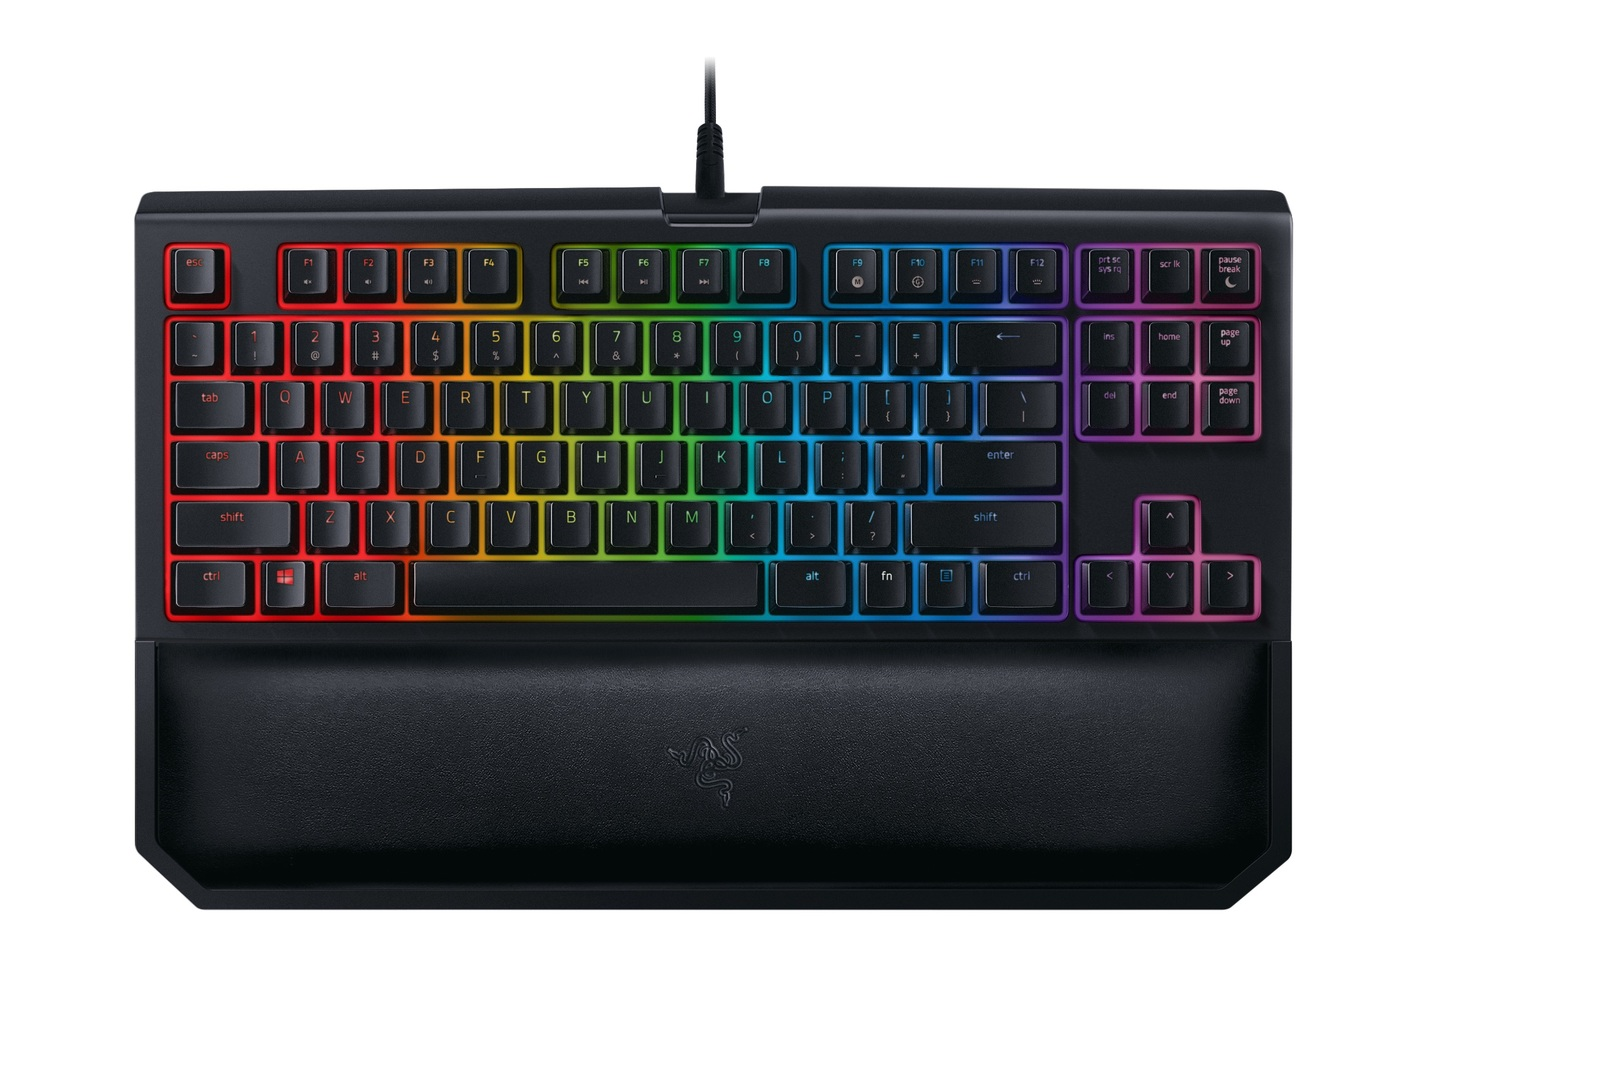 Razer BlackWidow Tournament Edition Chroma Gaming Keyboard V2 - Yellow Switches for PC Games image